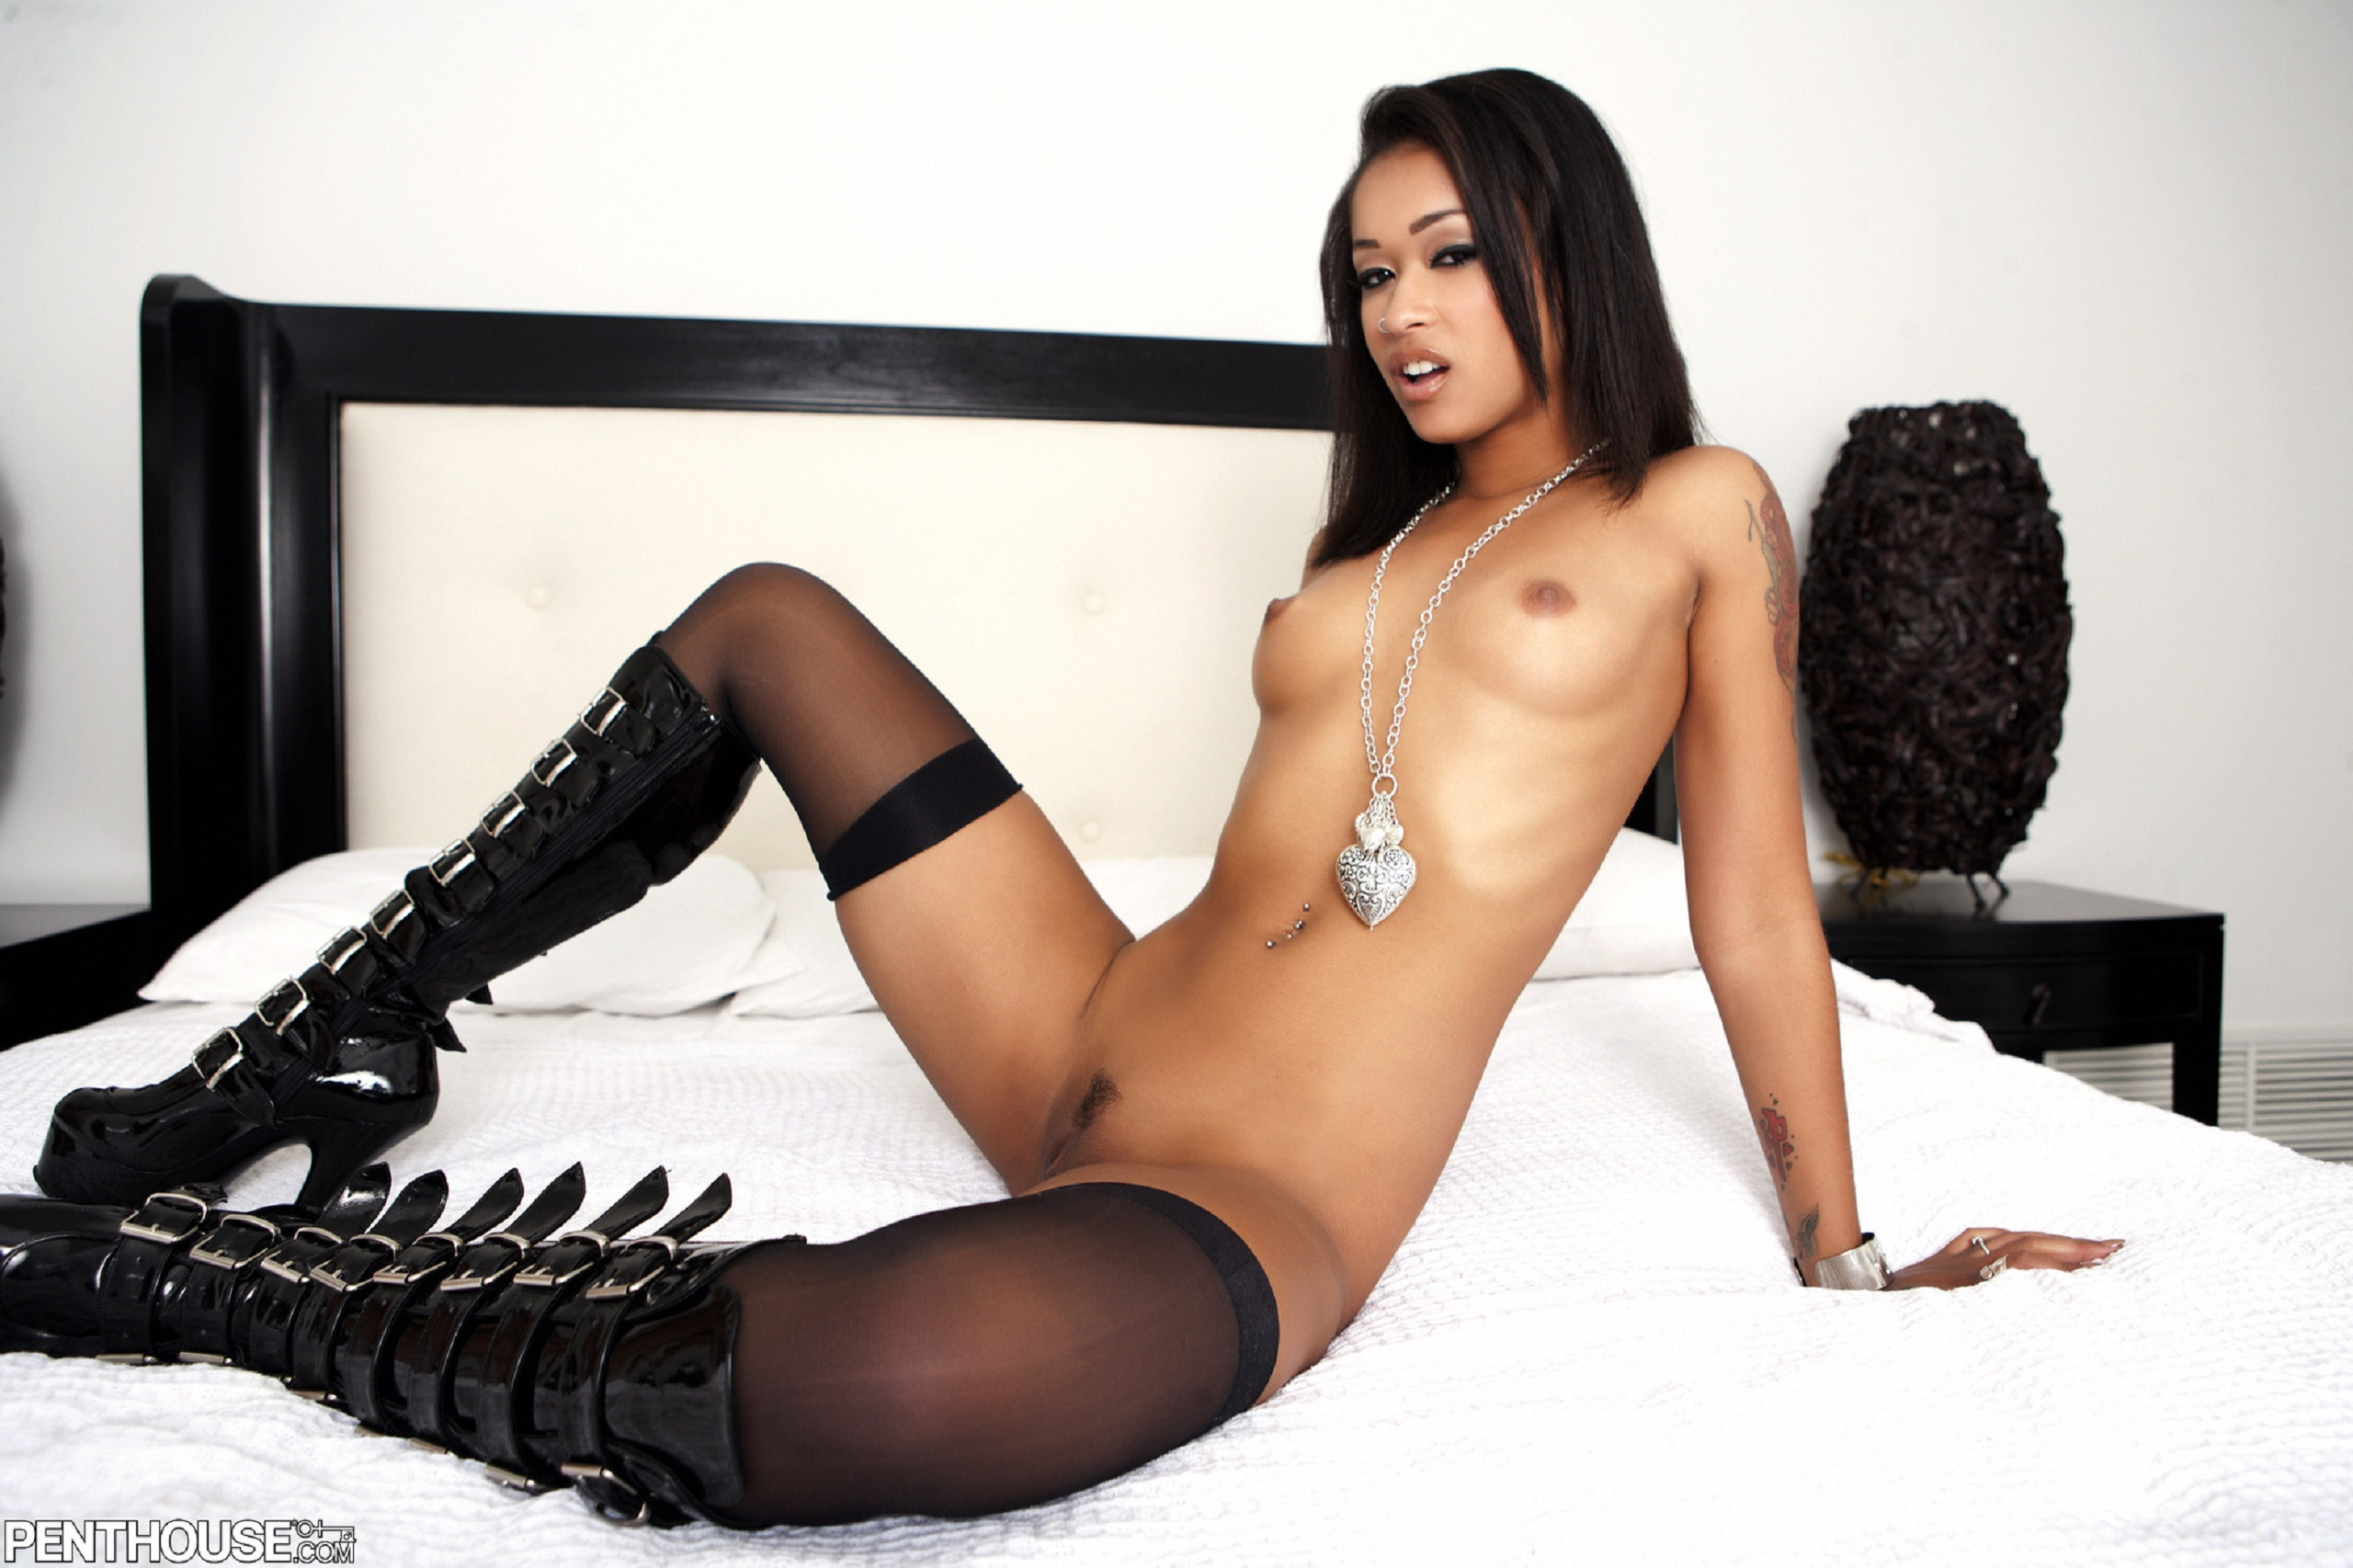 Wallpaper Skin Diamond, Porn Star, Ebony, Mixed Race, Tits -9135